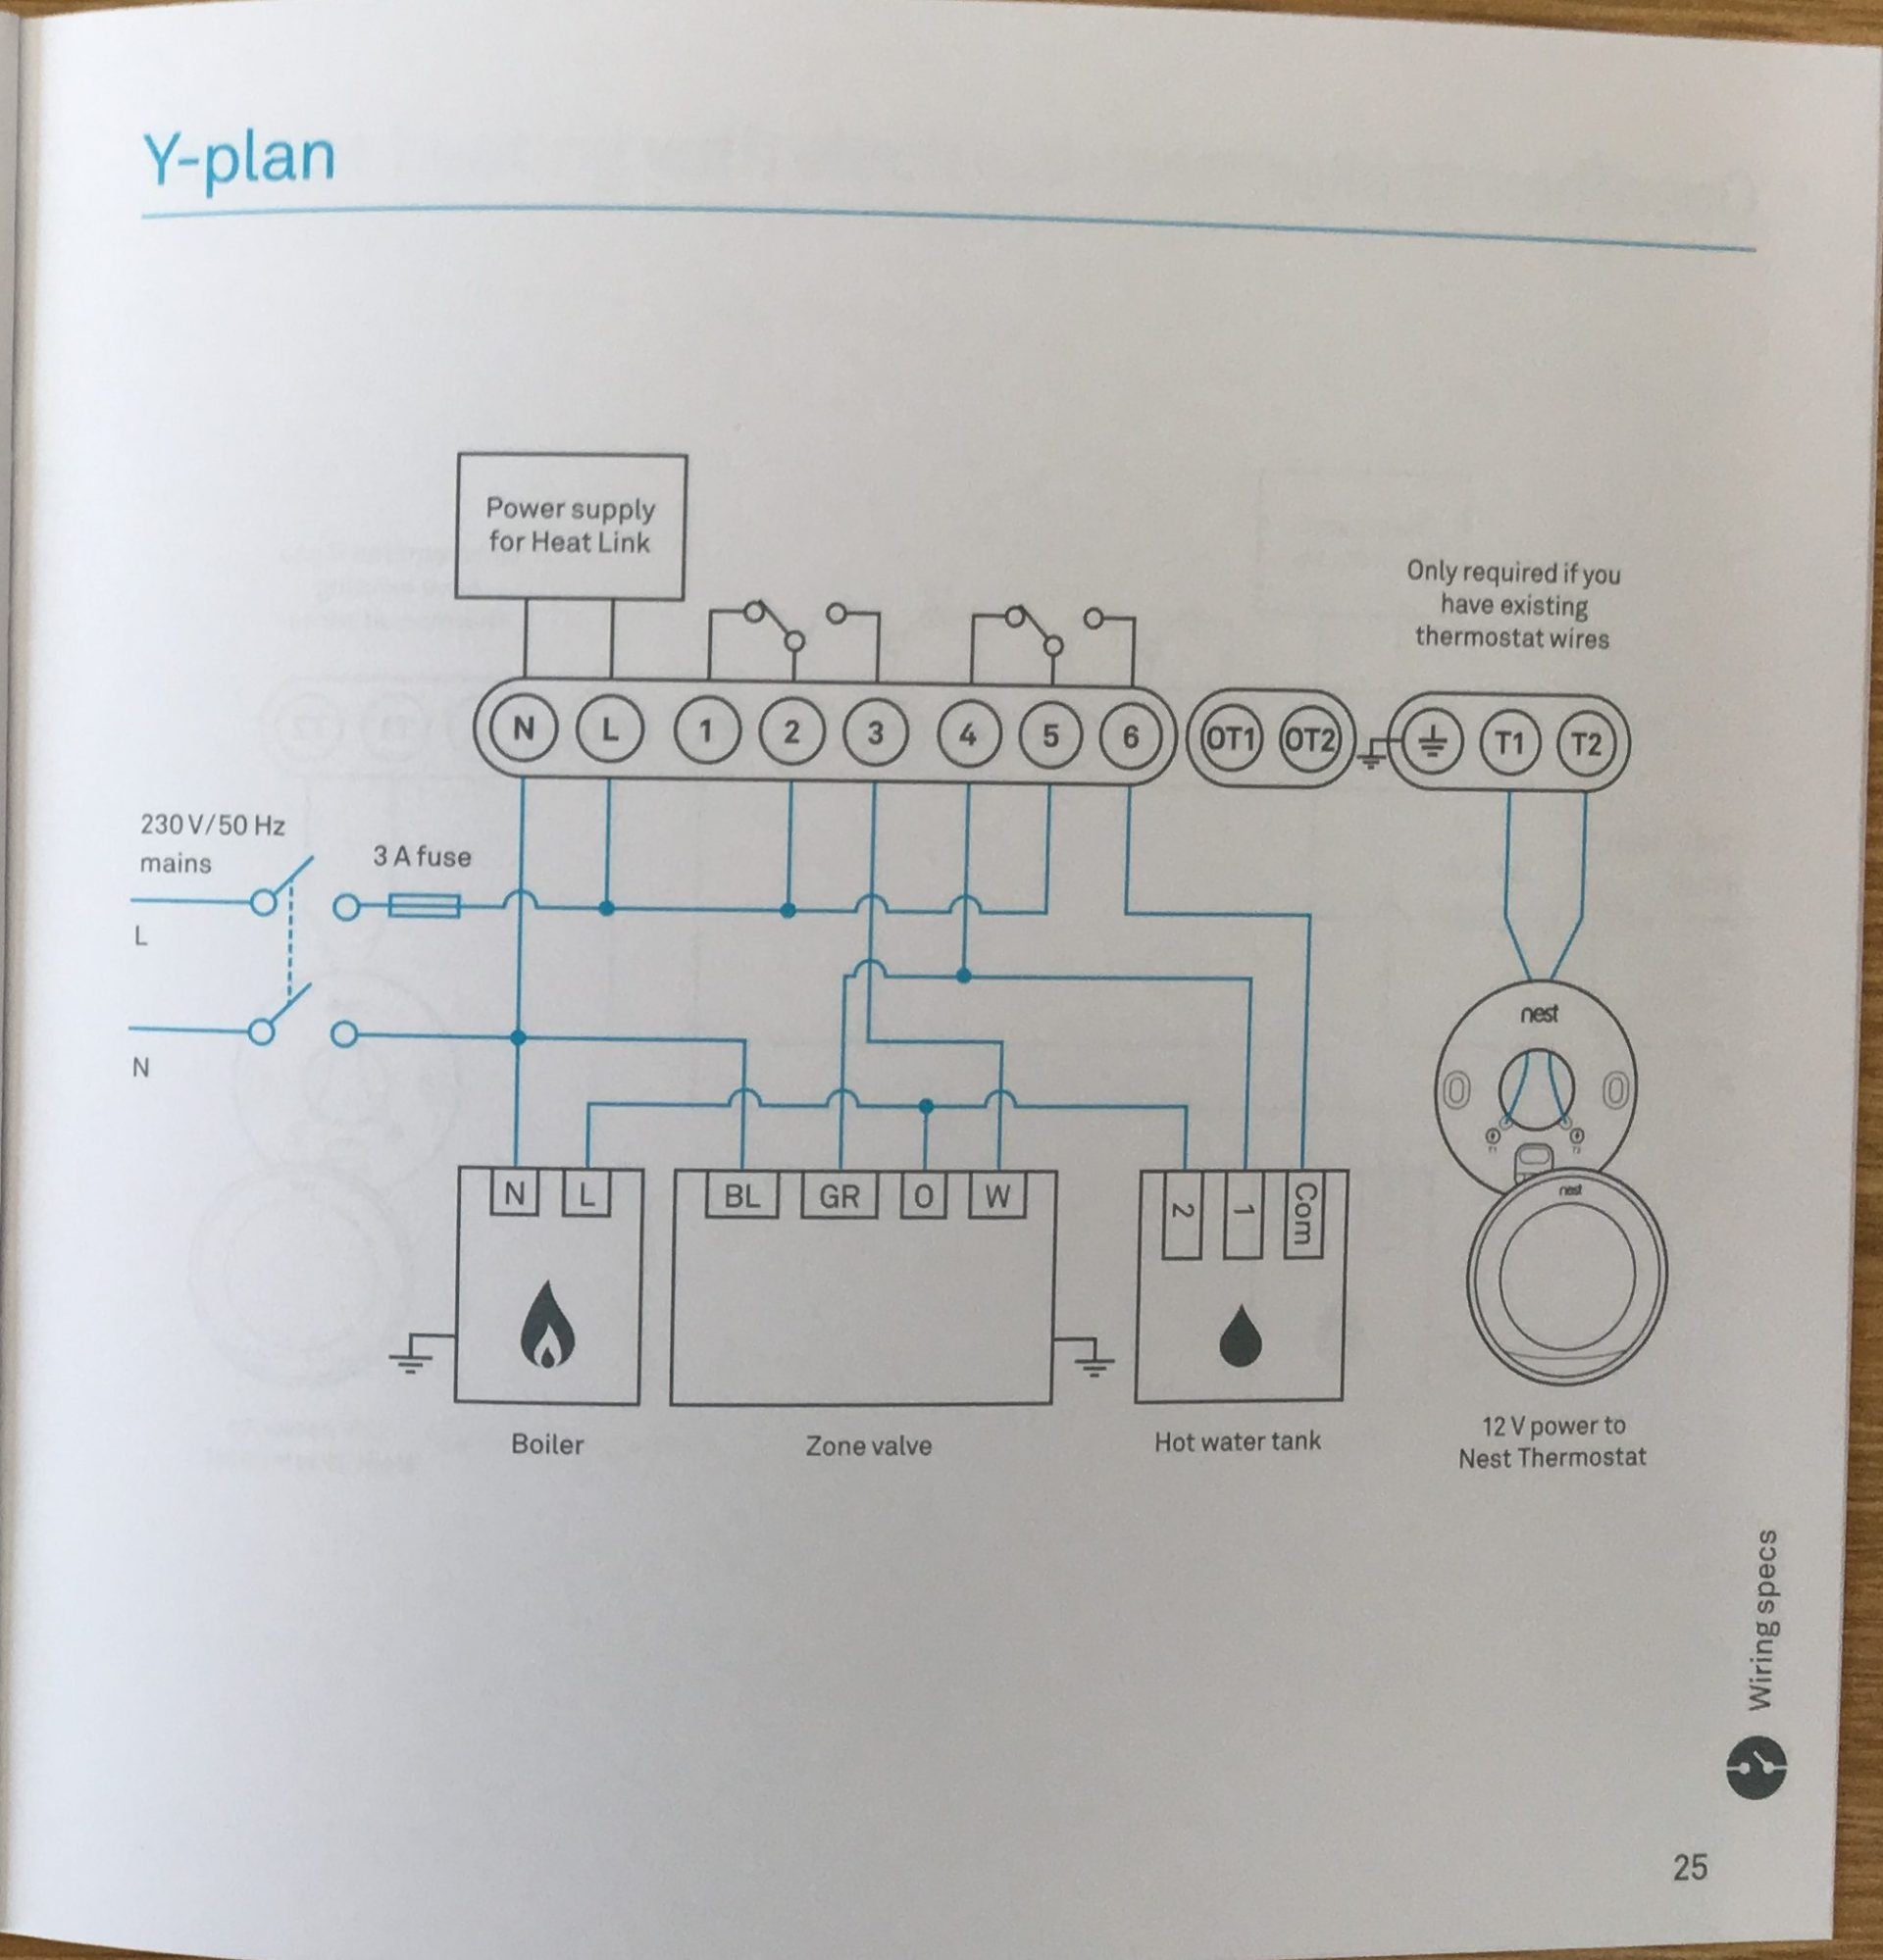 How To Install The Nest Learning Thermostat (3Rd Gen) In A Y-Plan - Wiring Diagram For Nest Thermostat Ac Only